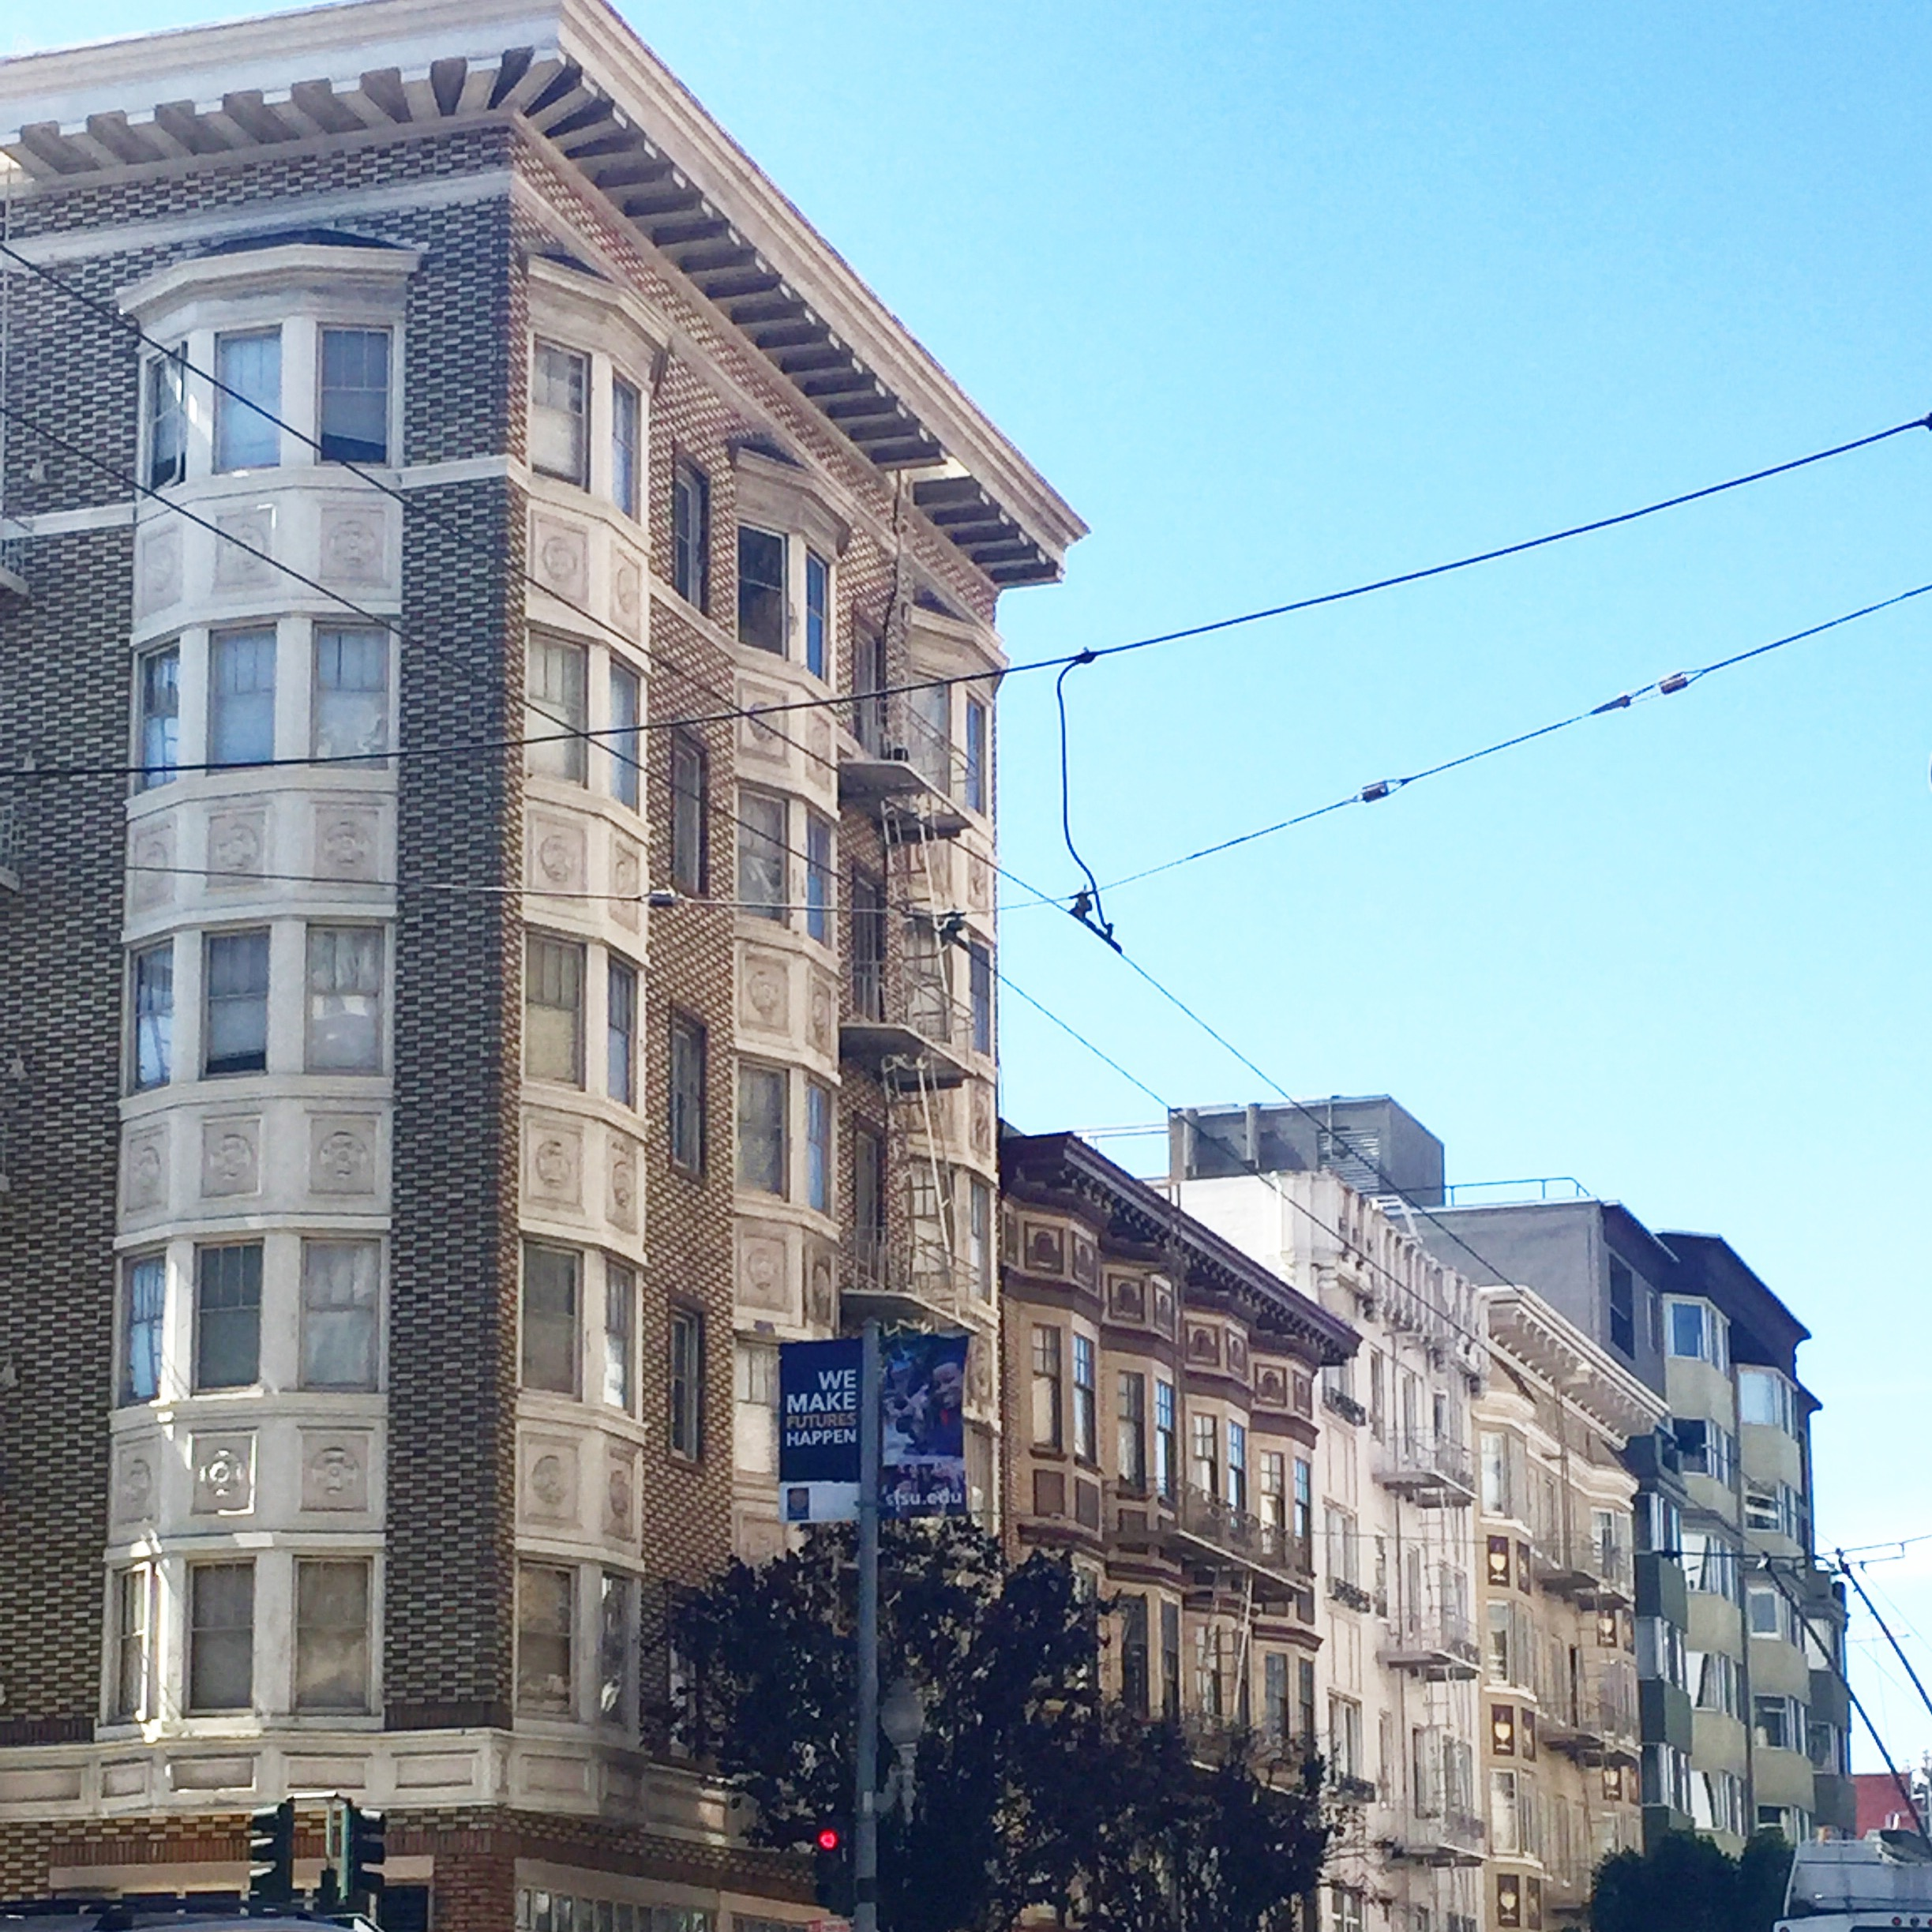 sanfrancisco,city,buildings,explore,streets